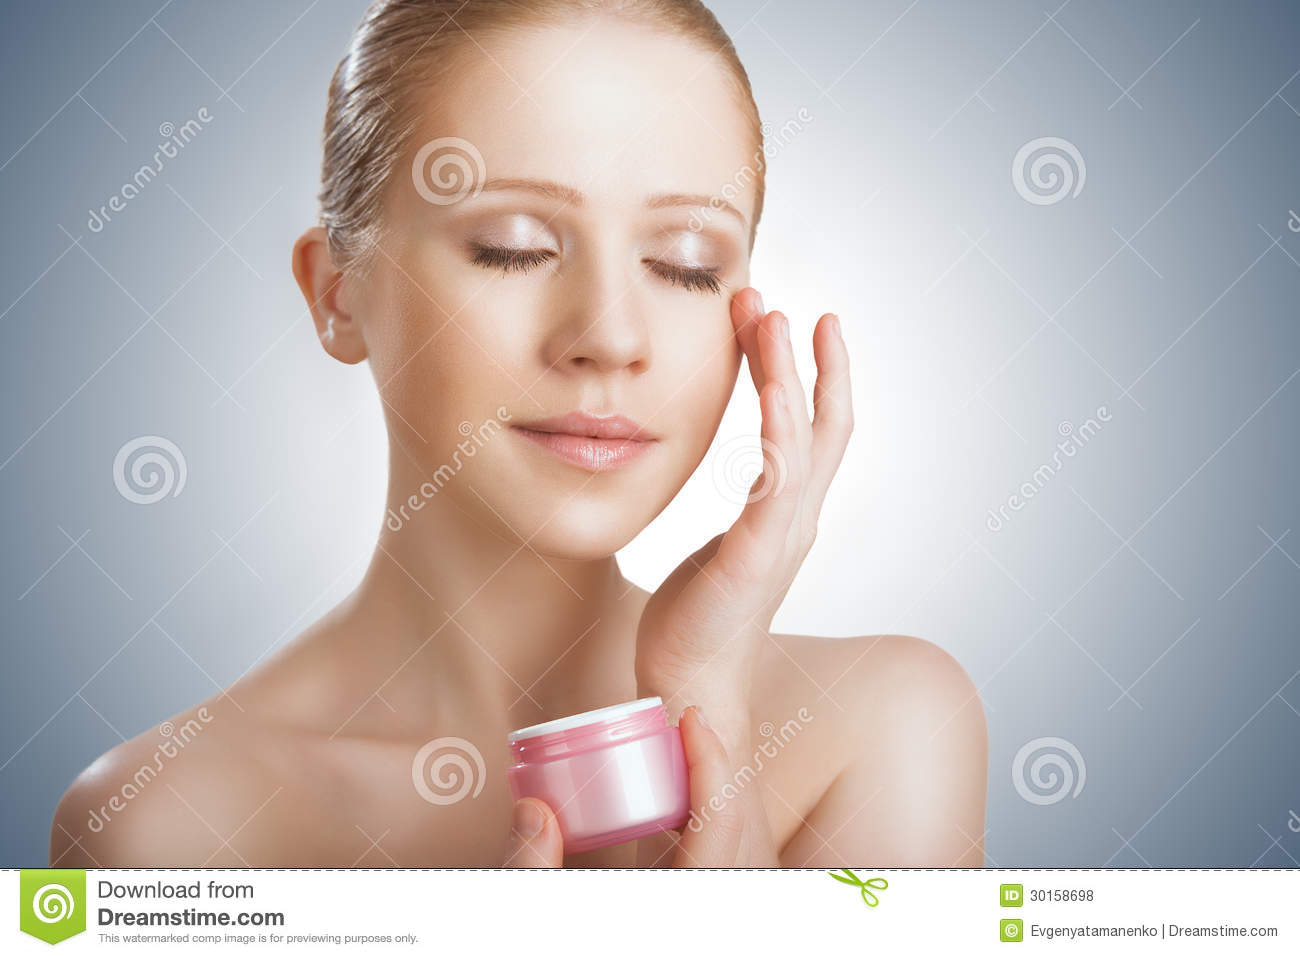 Download Skin Care.  Beauty  Girl With Eyes Closed With Jar Of Cream Stock Photo - Image of care, body: 30158698